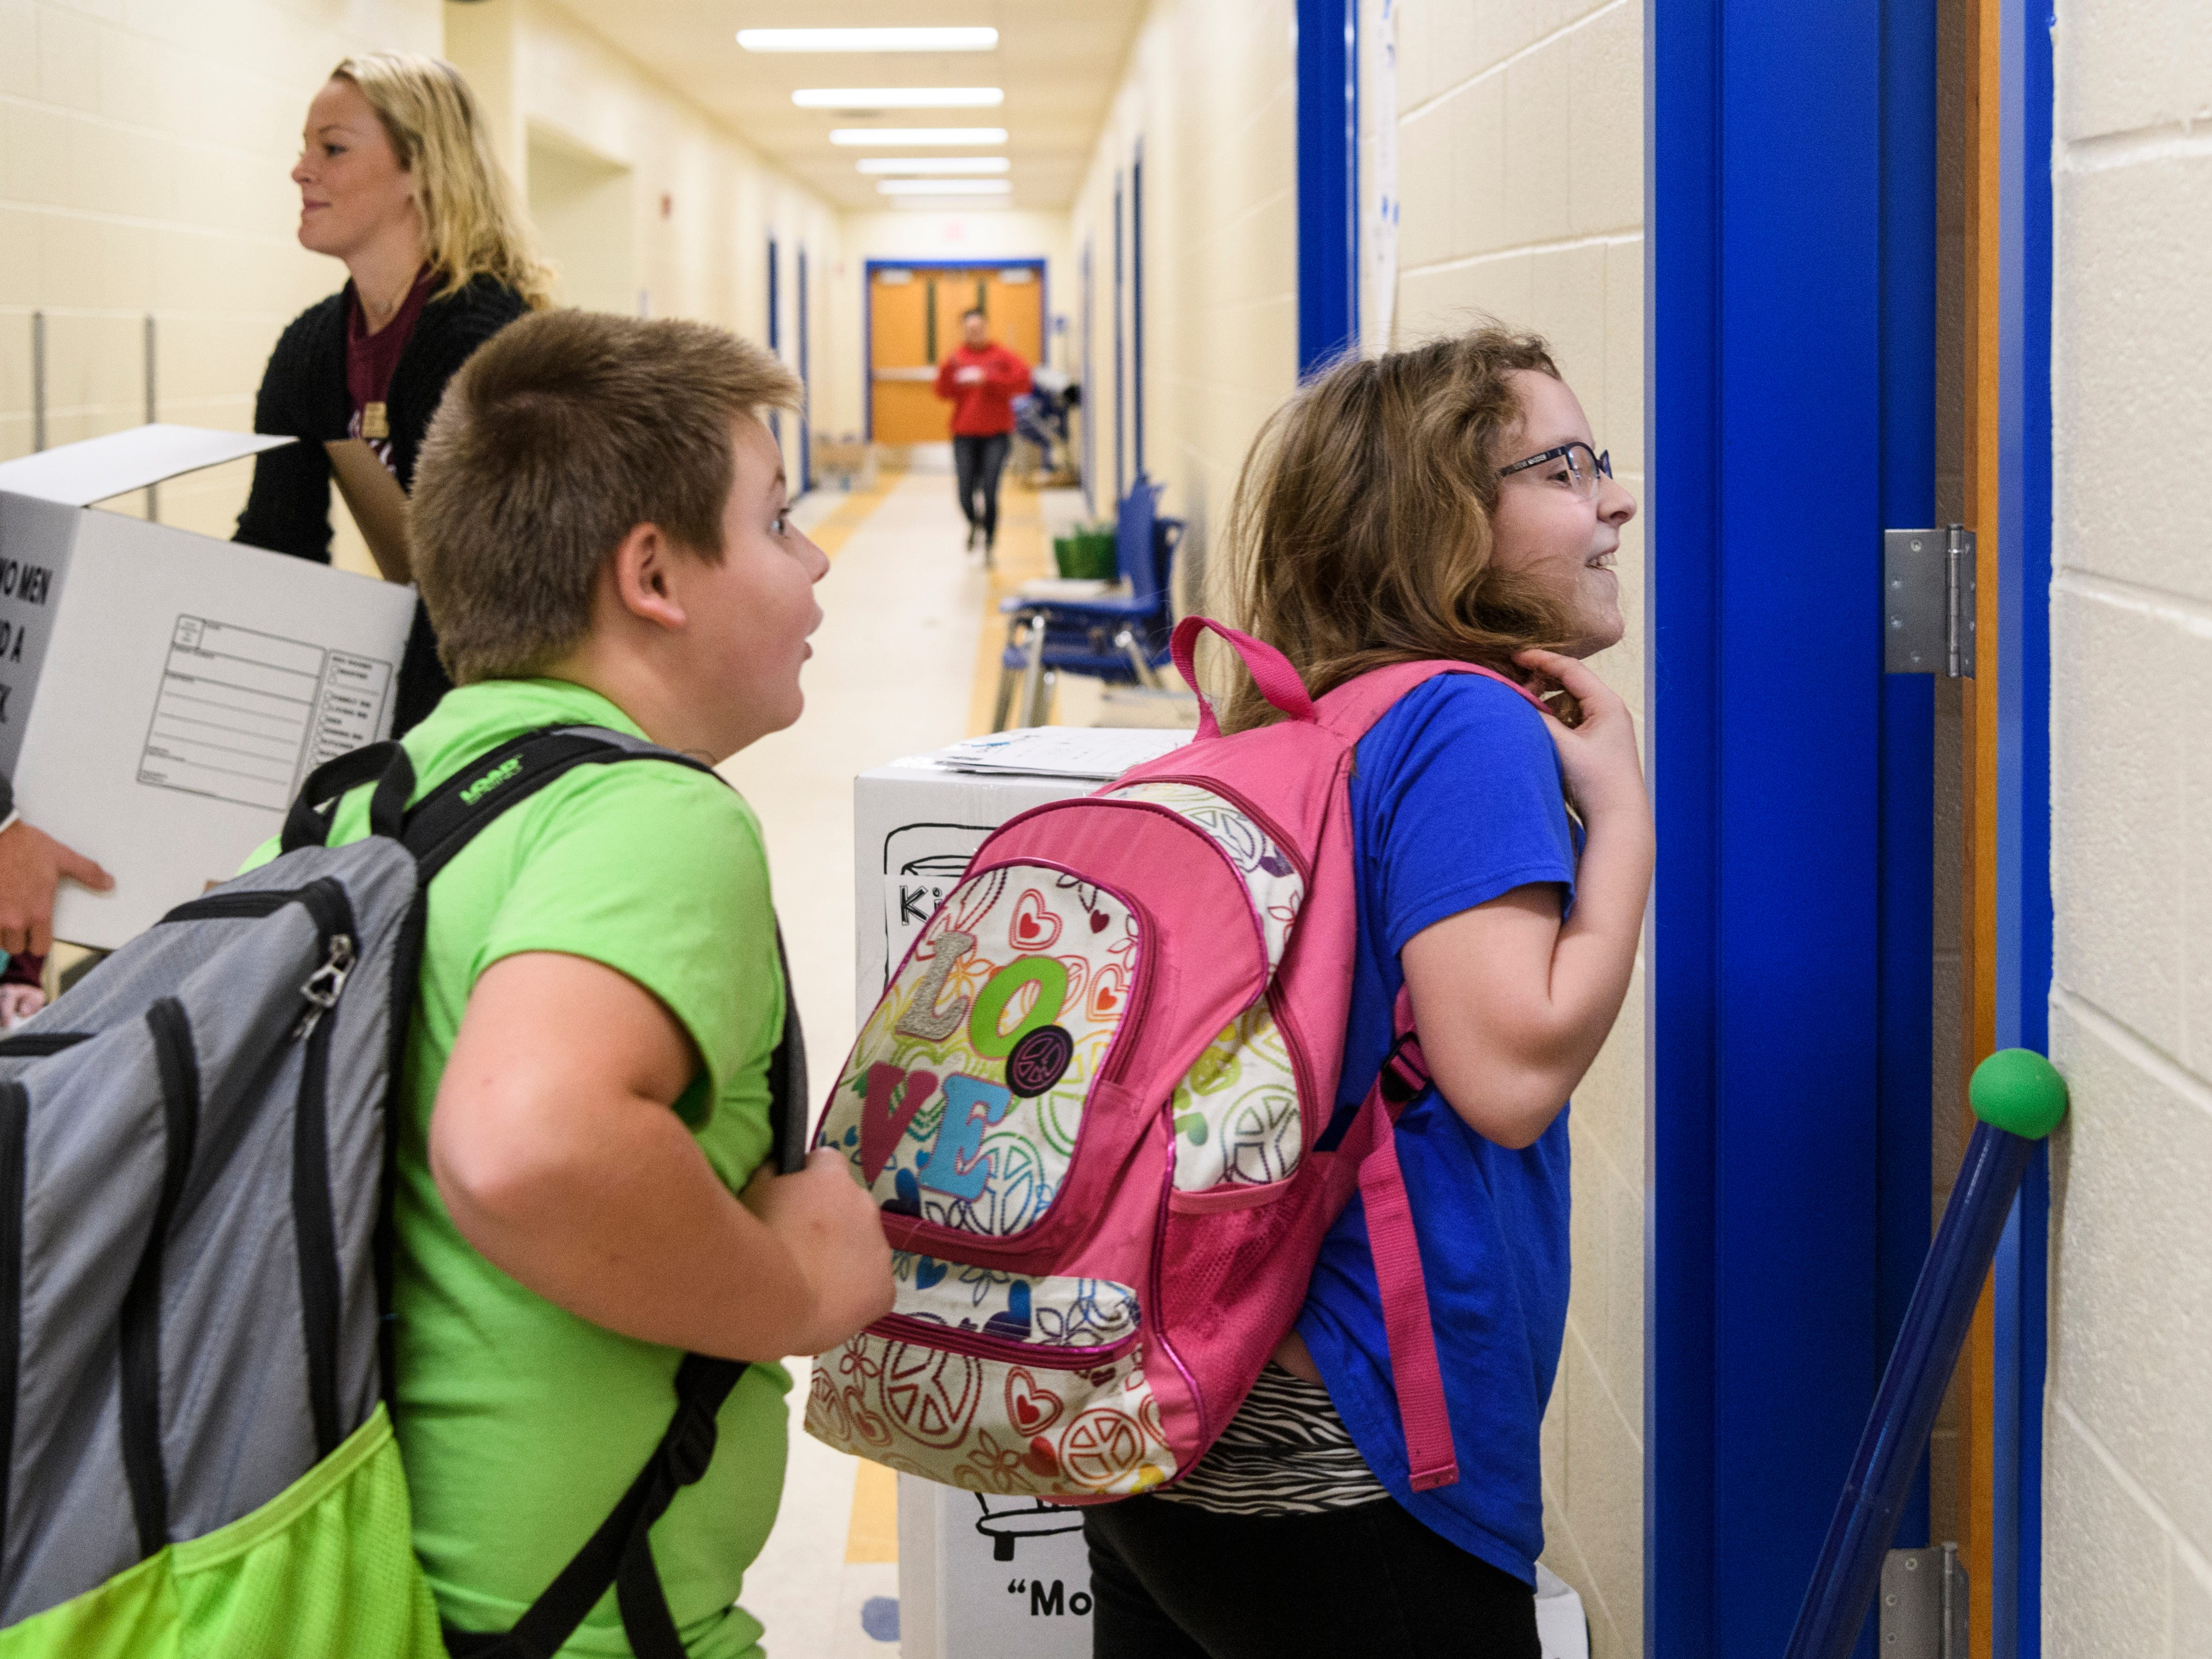 Alex Roberts, left, and Lindsay Payne, right, walk into their fourth-grade teacher Katie Kirkwood's classroom during a sneak peak tour of the new Spottsville Elementary school building, Friday morning, Nov. 9, 2018. The students used part of their early dismissal day to move items over from the old building in preparation for the scheduled move-in on Monday, Nov. 12.